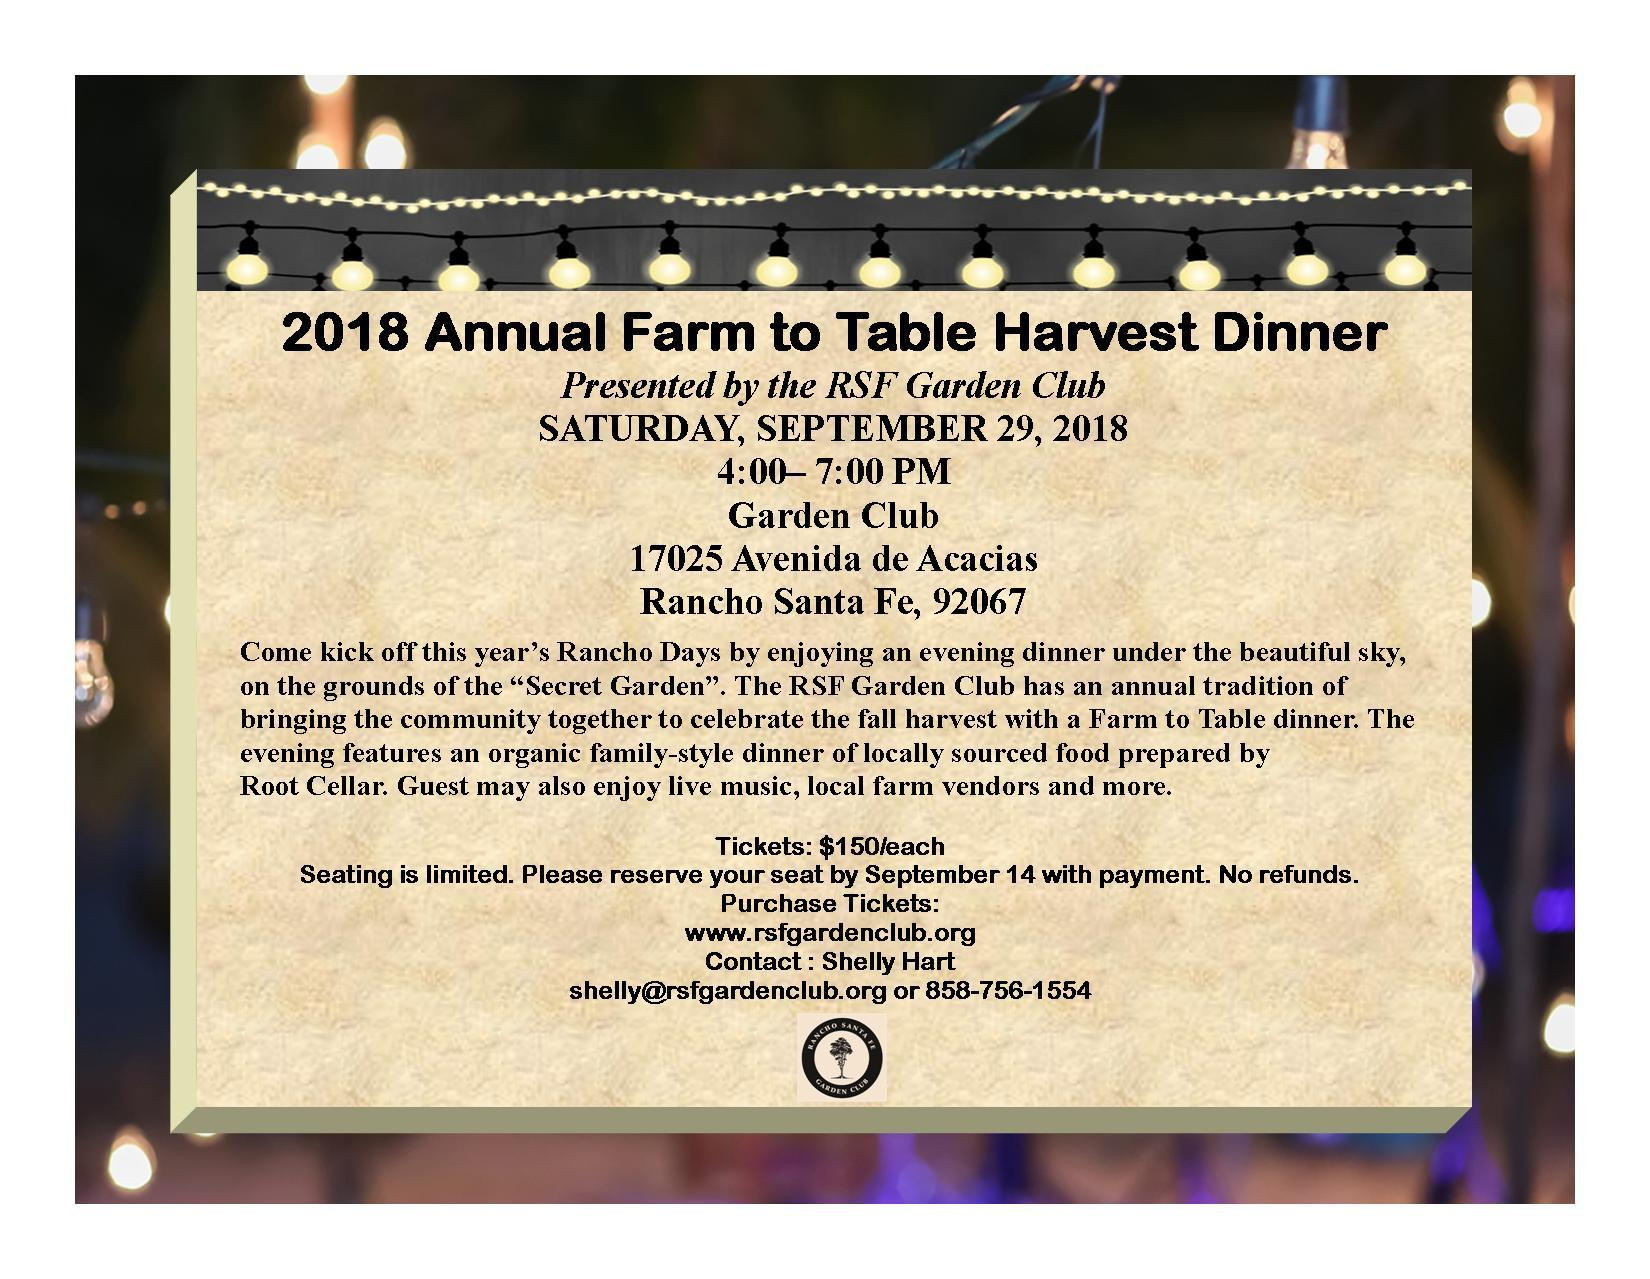 Farm to Table Harvest Dinner